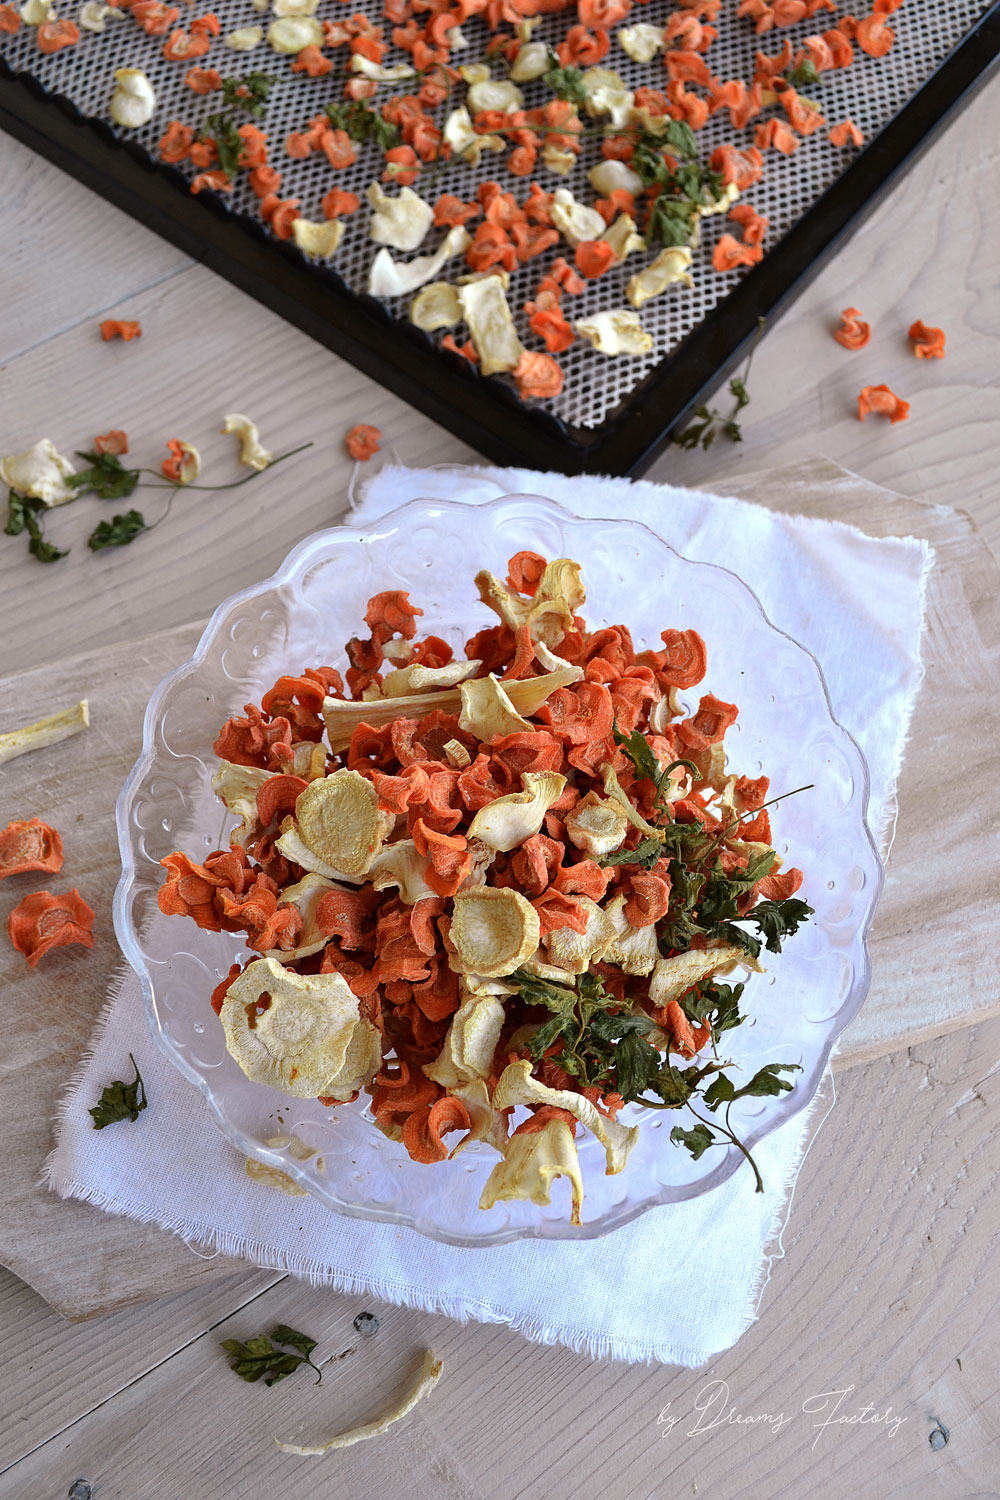 Using a dehydrator Froothie Optimum P200 dehydrator product review - dehydrating veggies www.bydreamsfactory.com